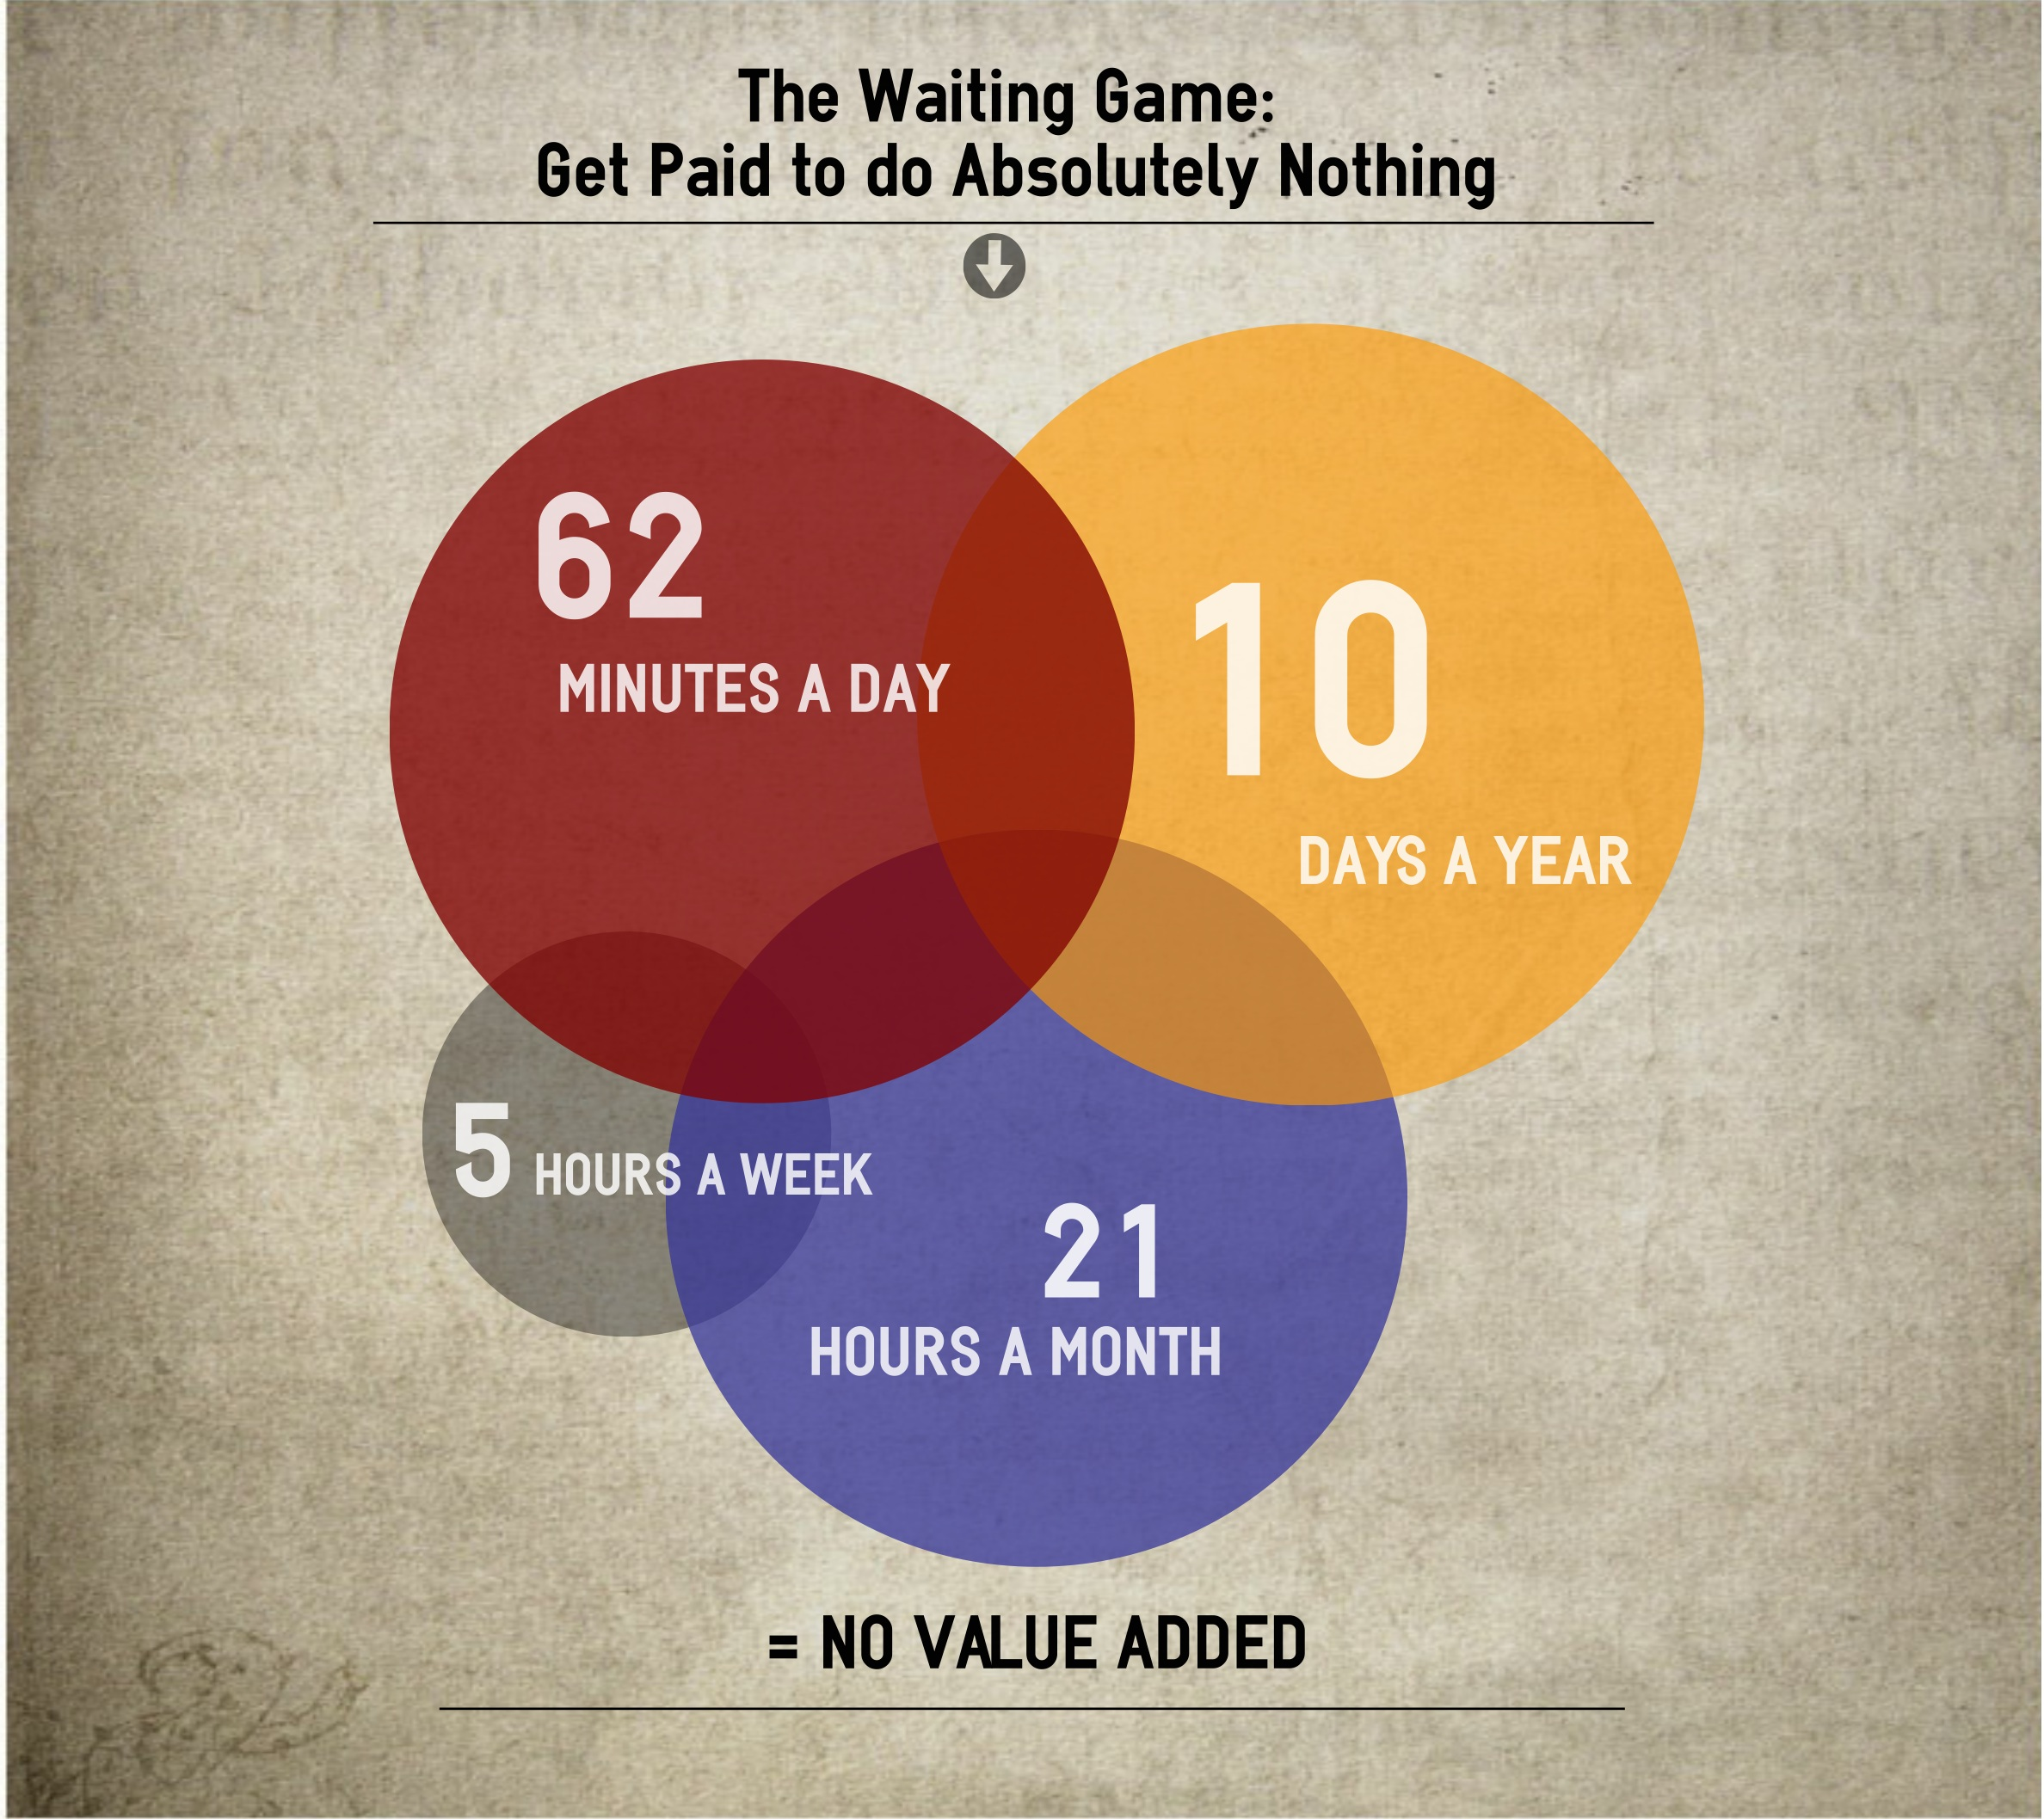 The Waiting Game: Get Paid to do Absolutely Nothing